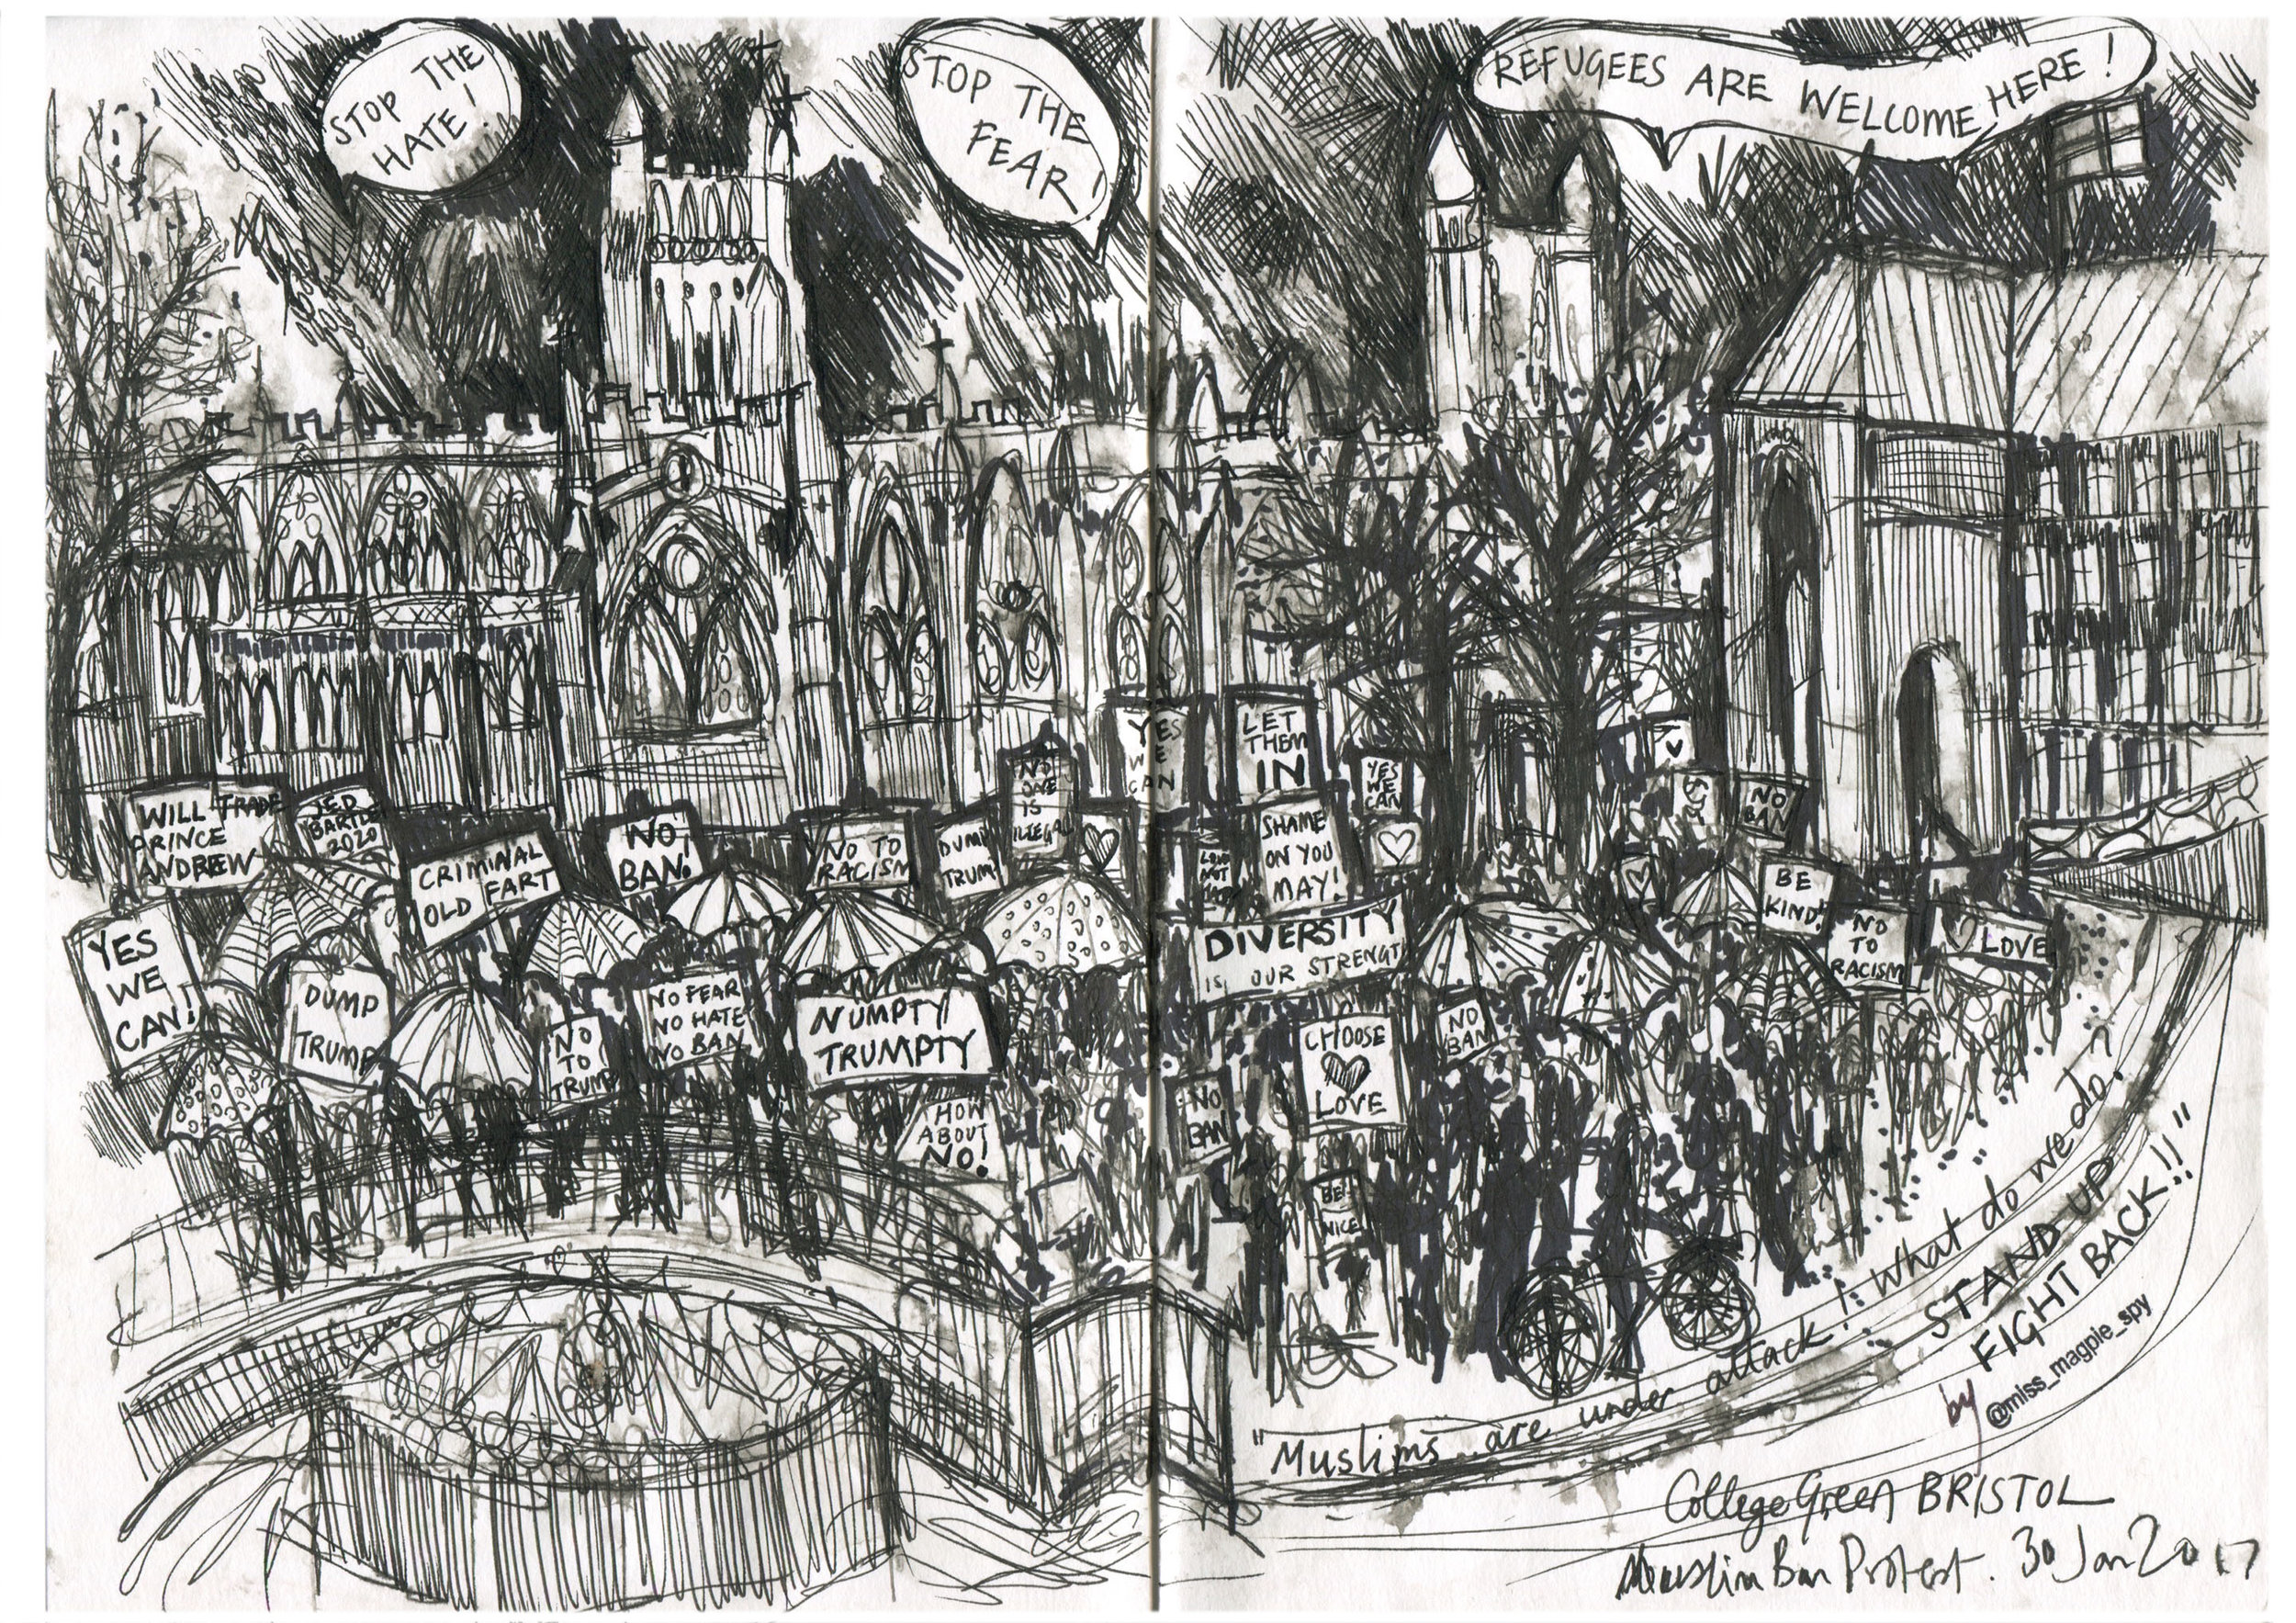 Created at the Muslim Ban Protest, College Green Bristol